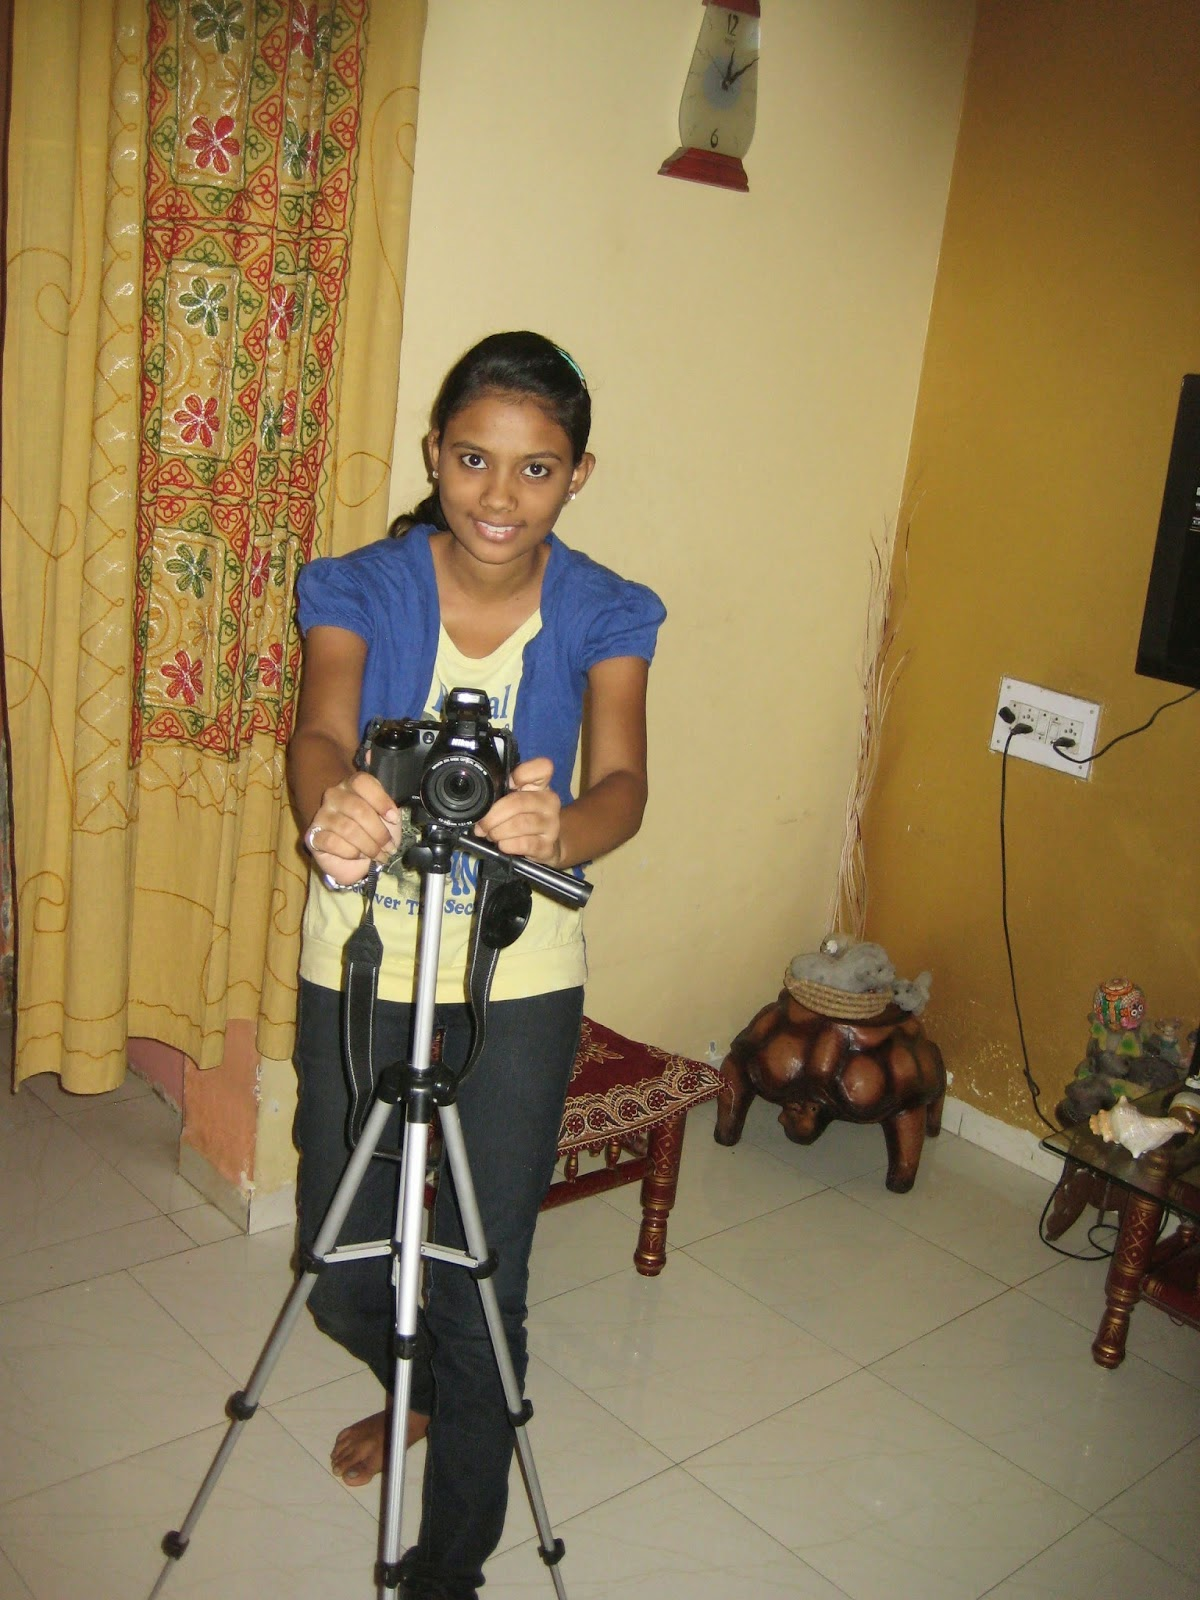 Best Youngest Woman Photographer Aviation News Editor in